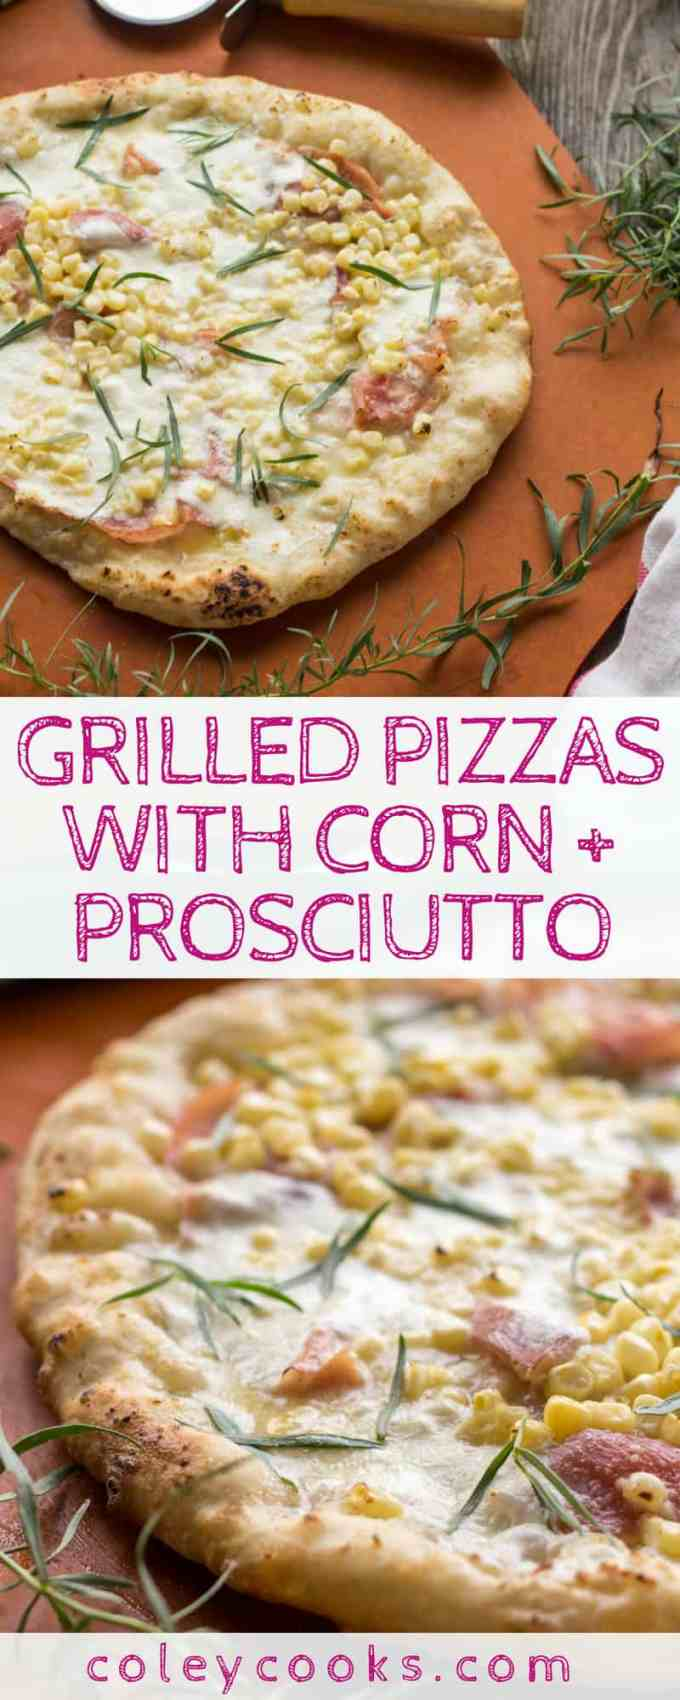 GRILLED PIZZAS with CORN + PROSCIUTTO | The best white pizza recipe with sweet summer corn and salty prosciutto, finished with tarragon! #recipe #pizza #summer #grilled #corn | ColeyCooks.com